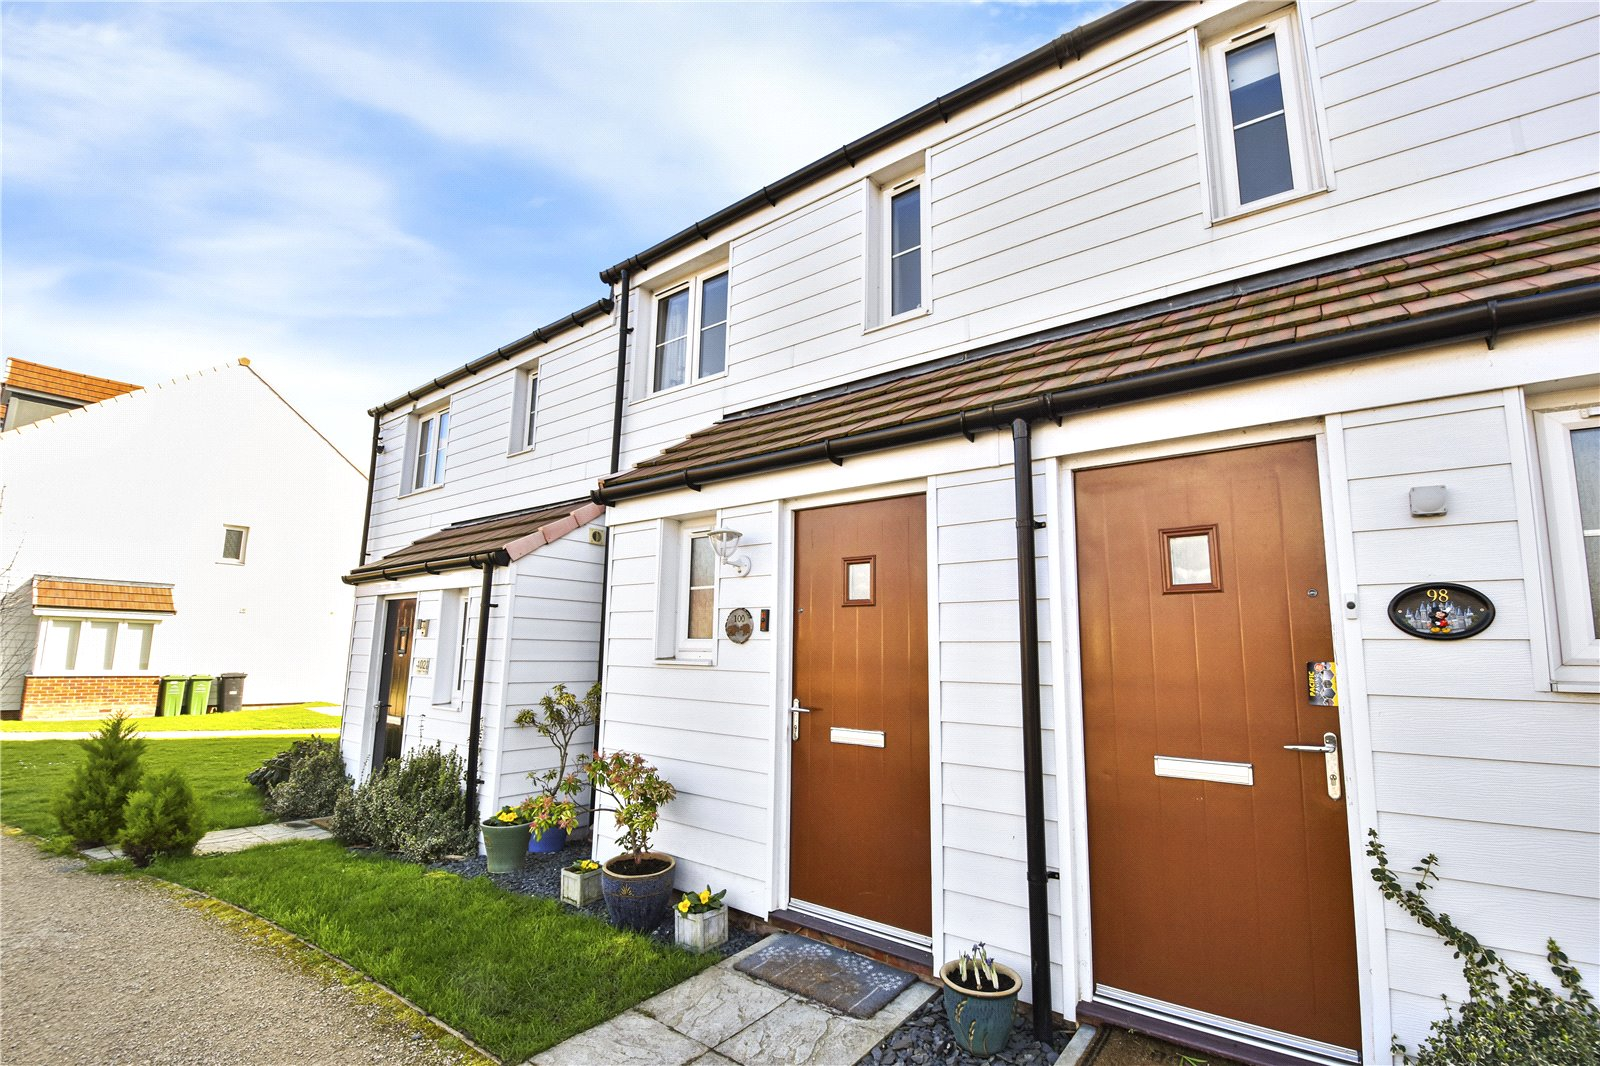 Ellingham View, Waterside, Dartford, Kent, DA1